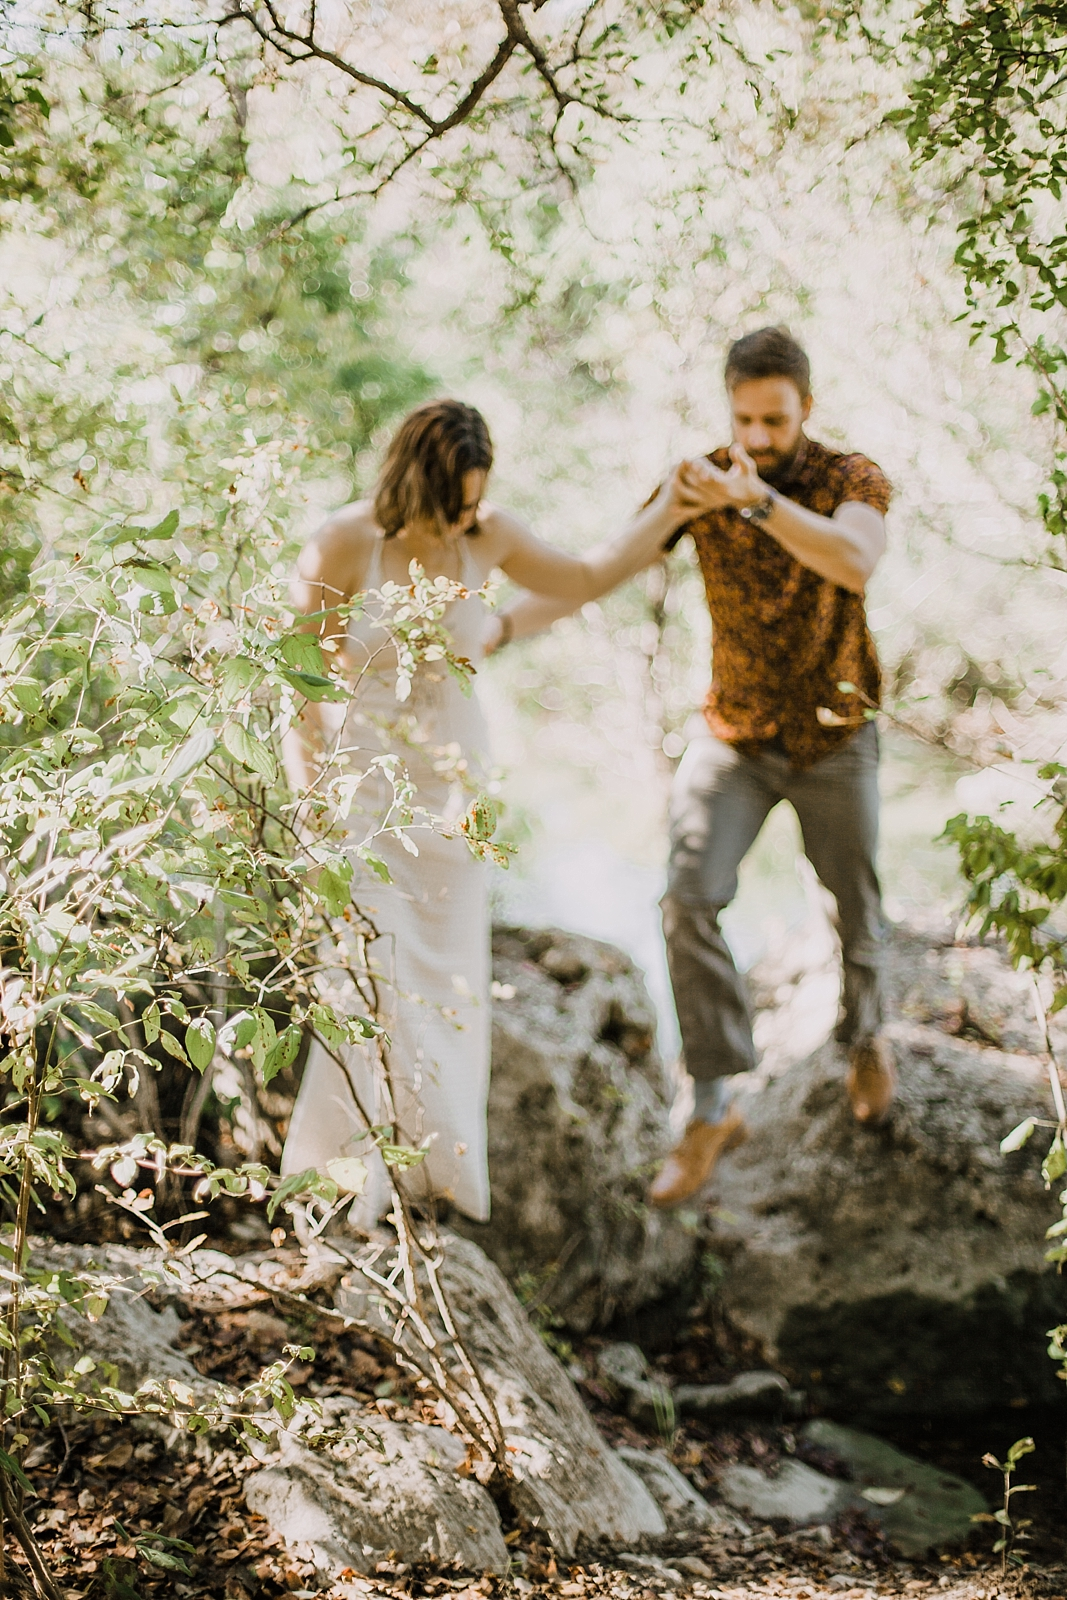 couple hiking together, austin texas wedding photographer, south africa wedding photographer, paris france hiking photographer, los angeles intimate wedding photographer